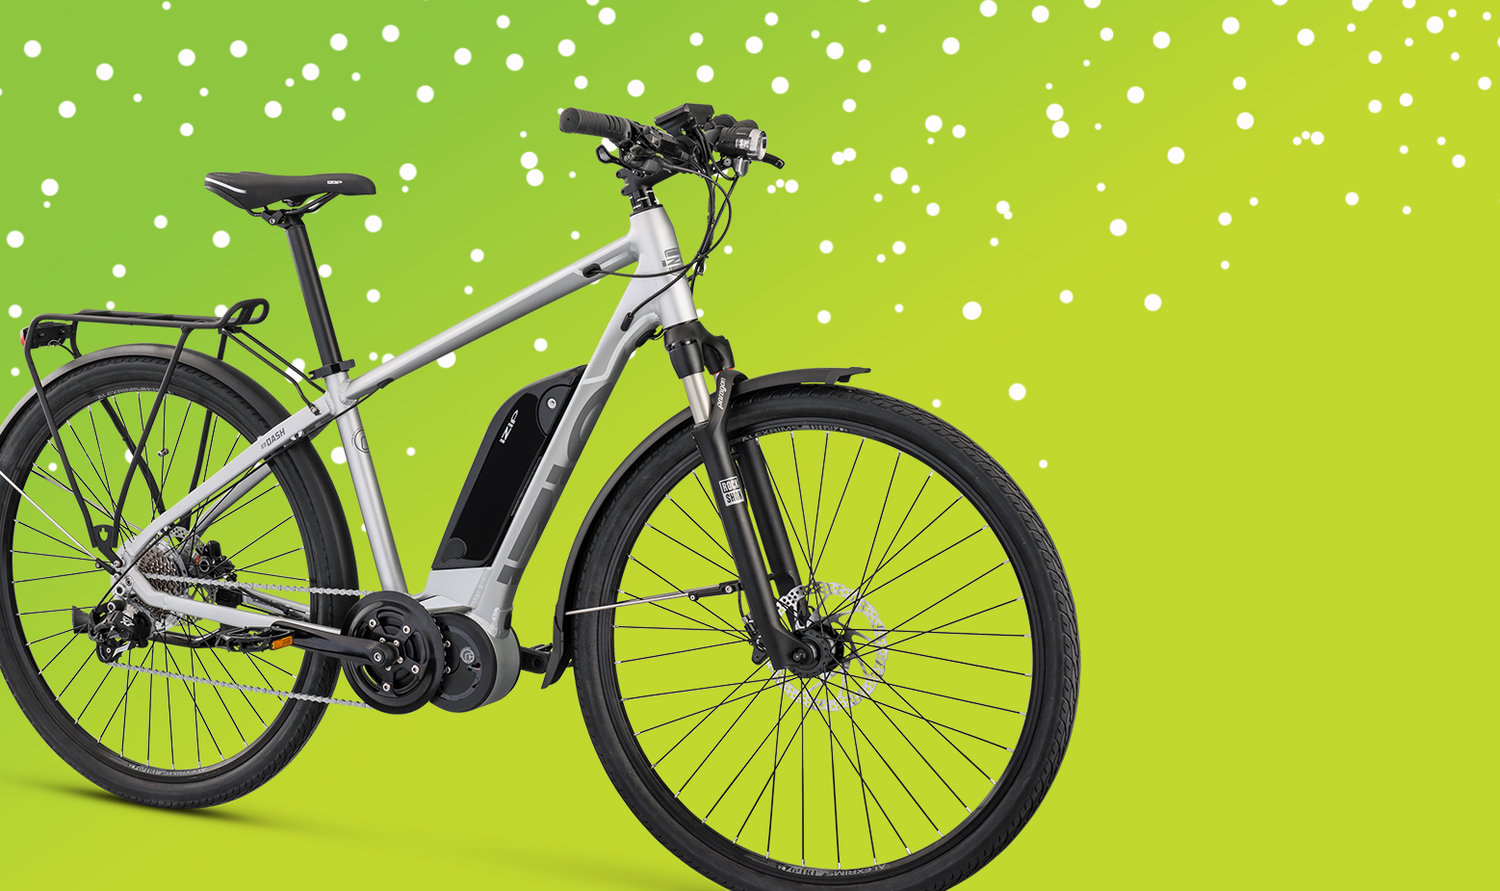 IZIP holiday2017 websitebanner2?1509576763 izip home izip electric bikes  at fashall.co